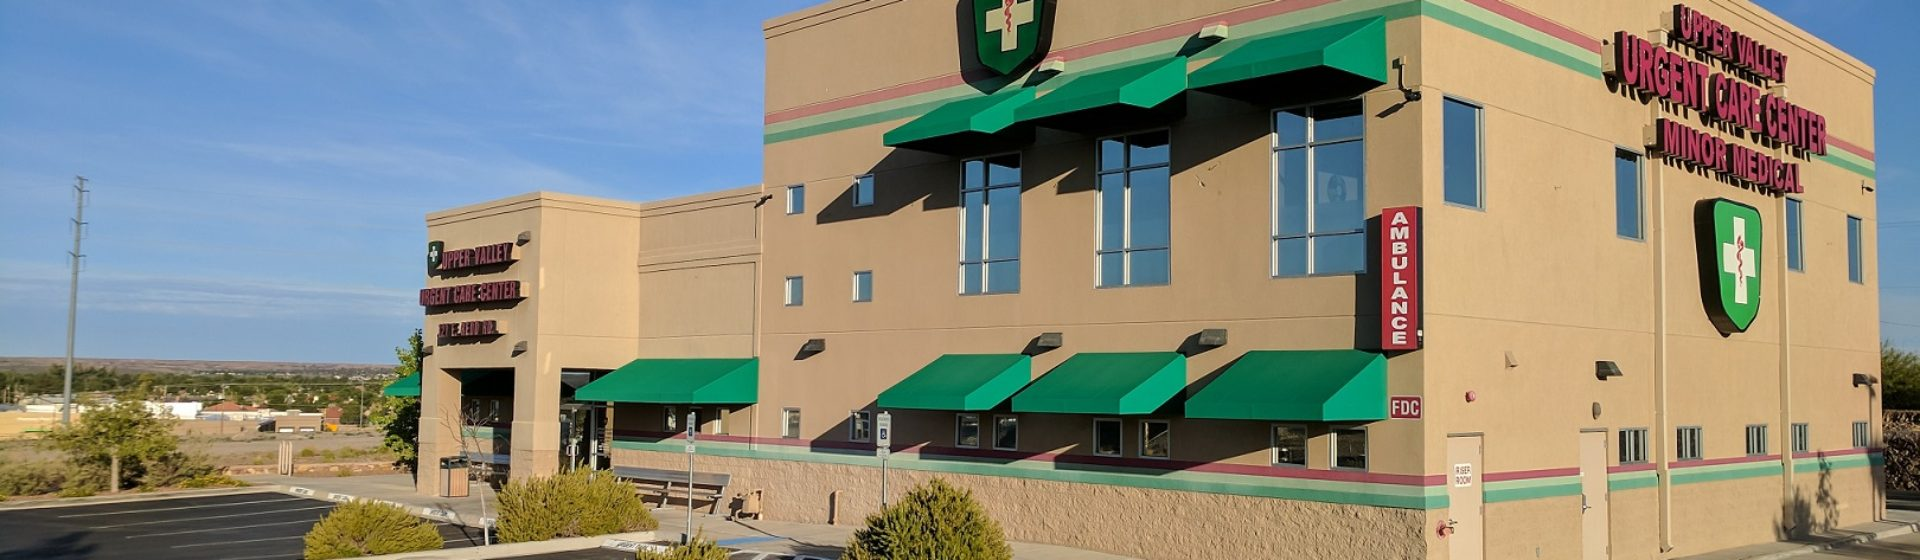 UPPER VALLEY URGENT CARE – Open Daily 8am until 9pm, and